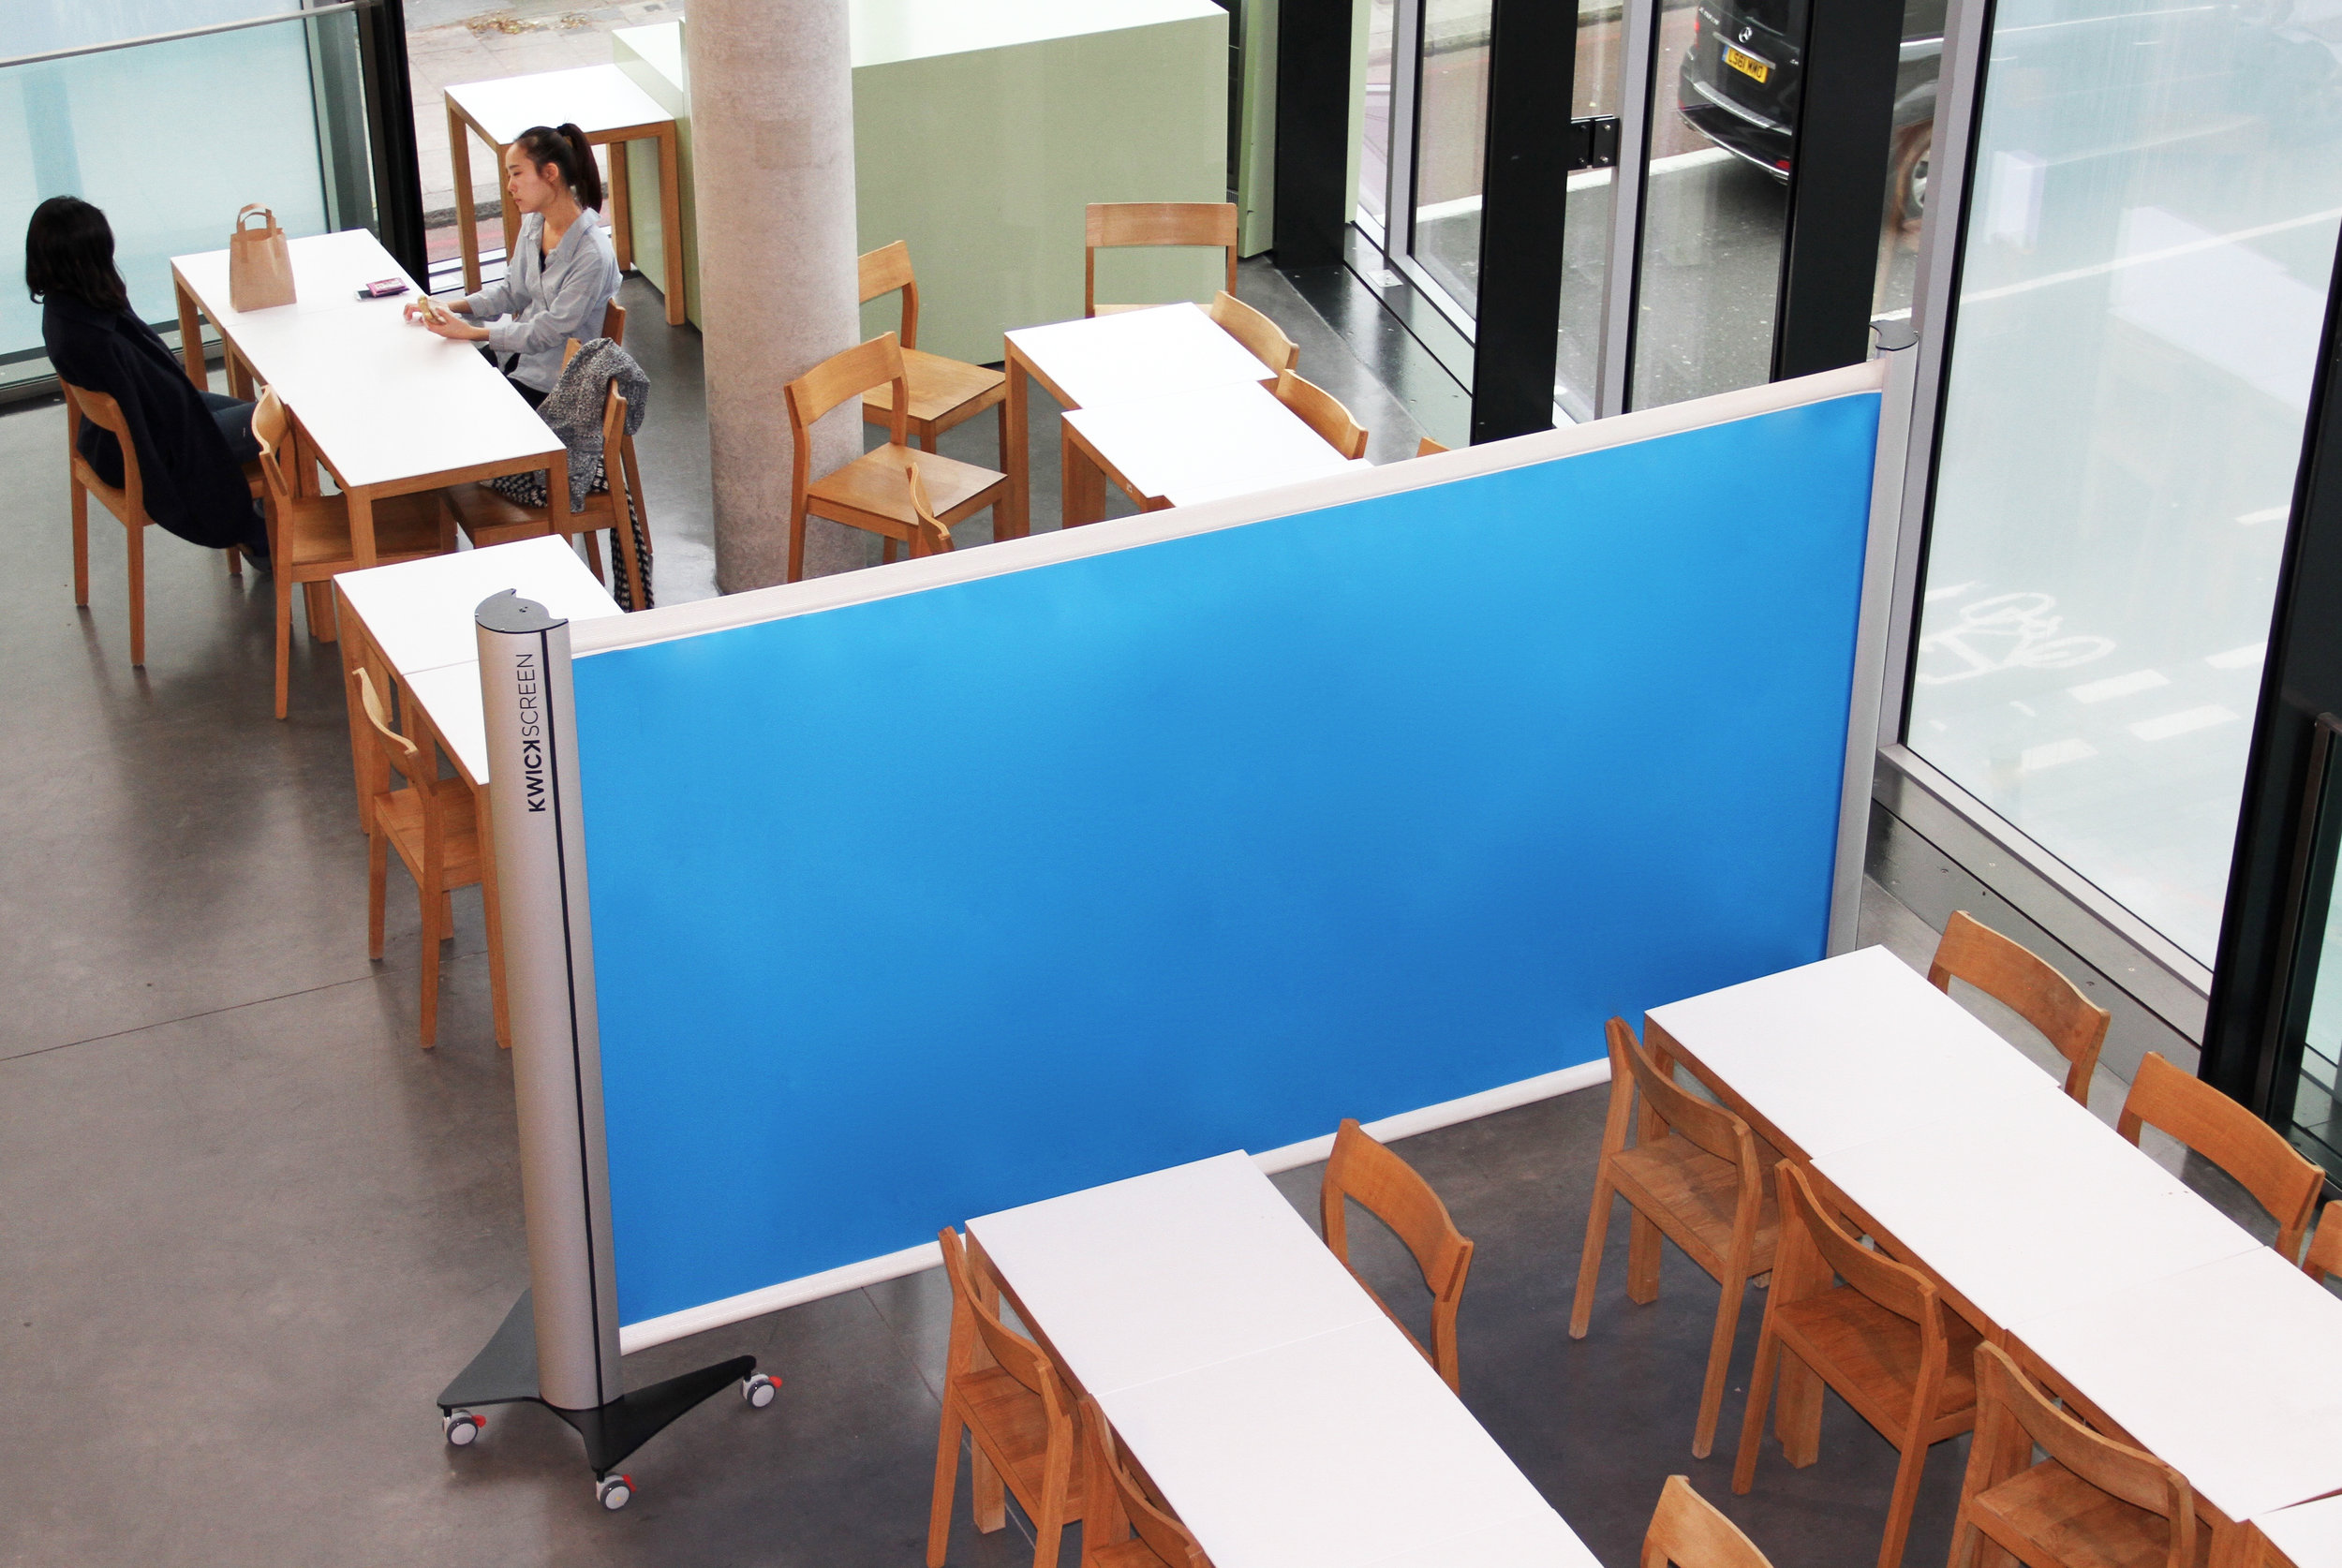 KwickScreen at the Royal College of Art Cafe Room divider